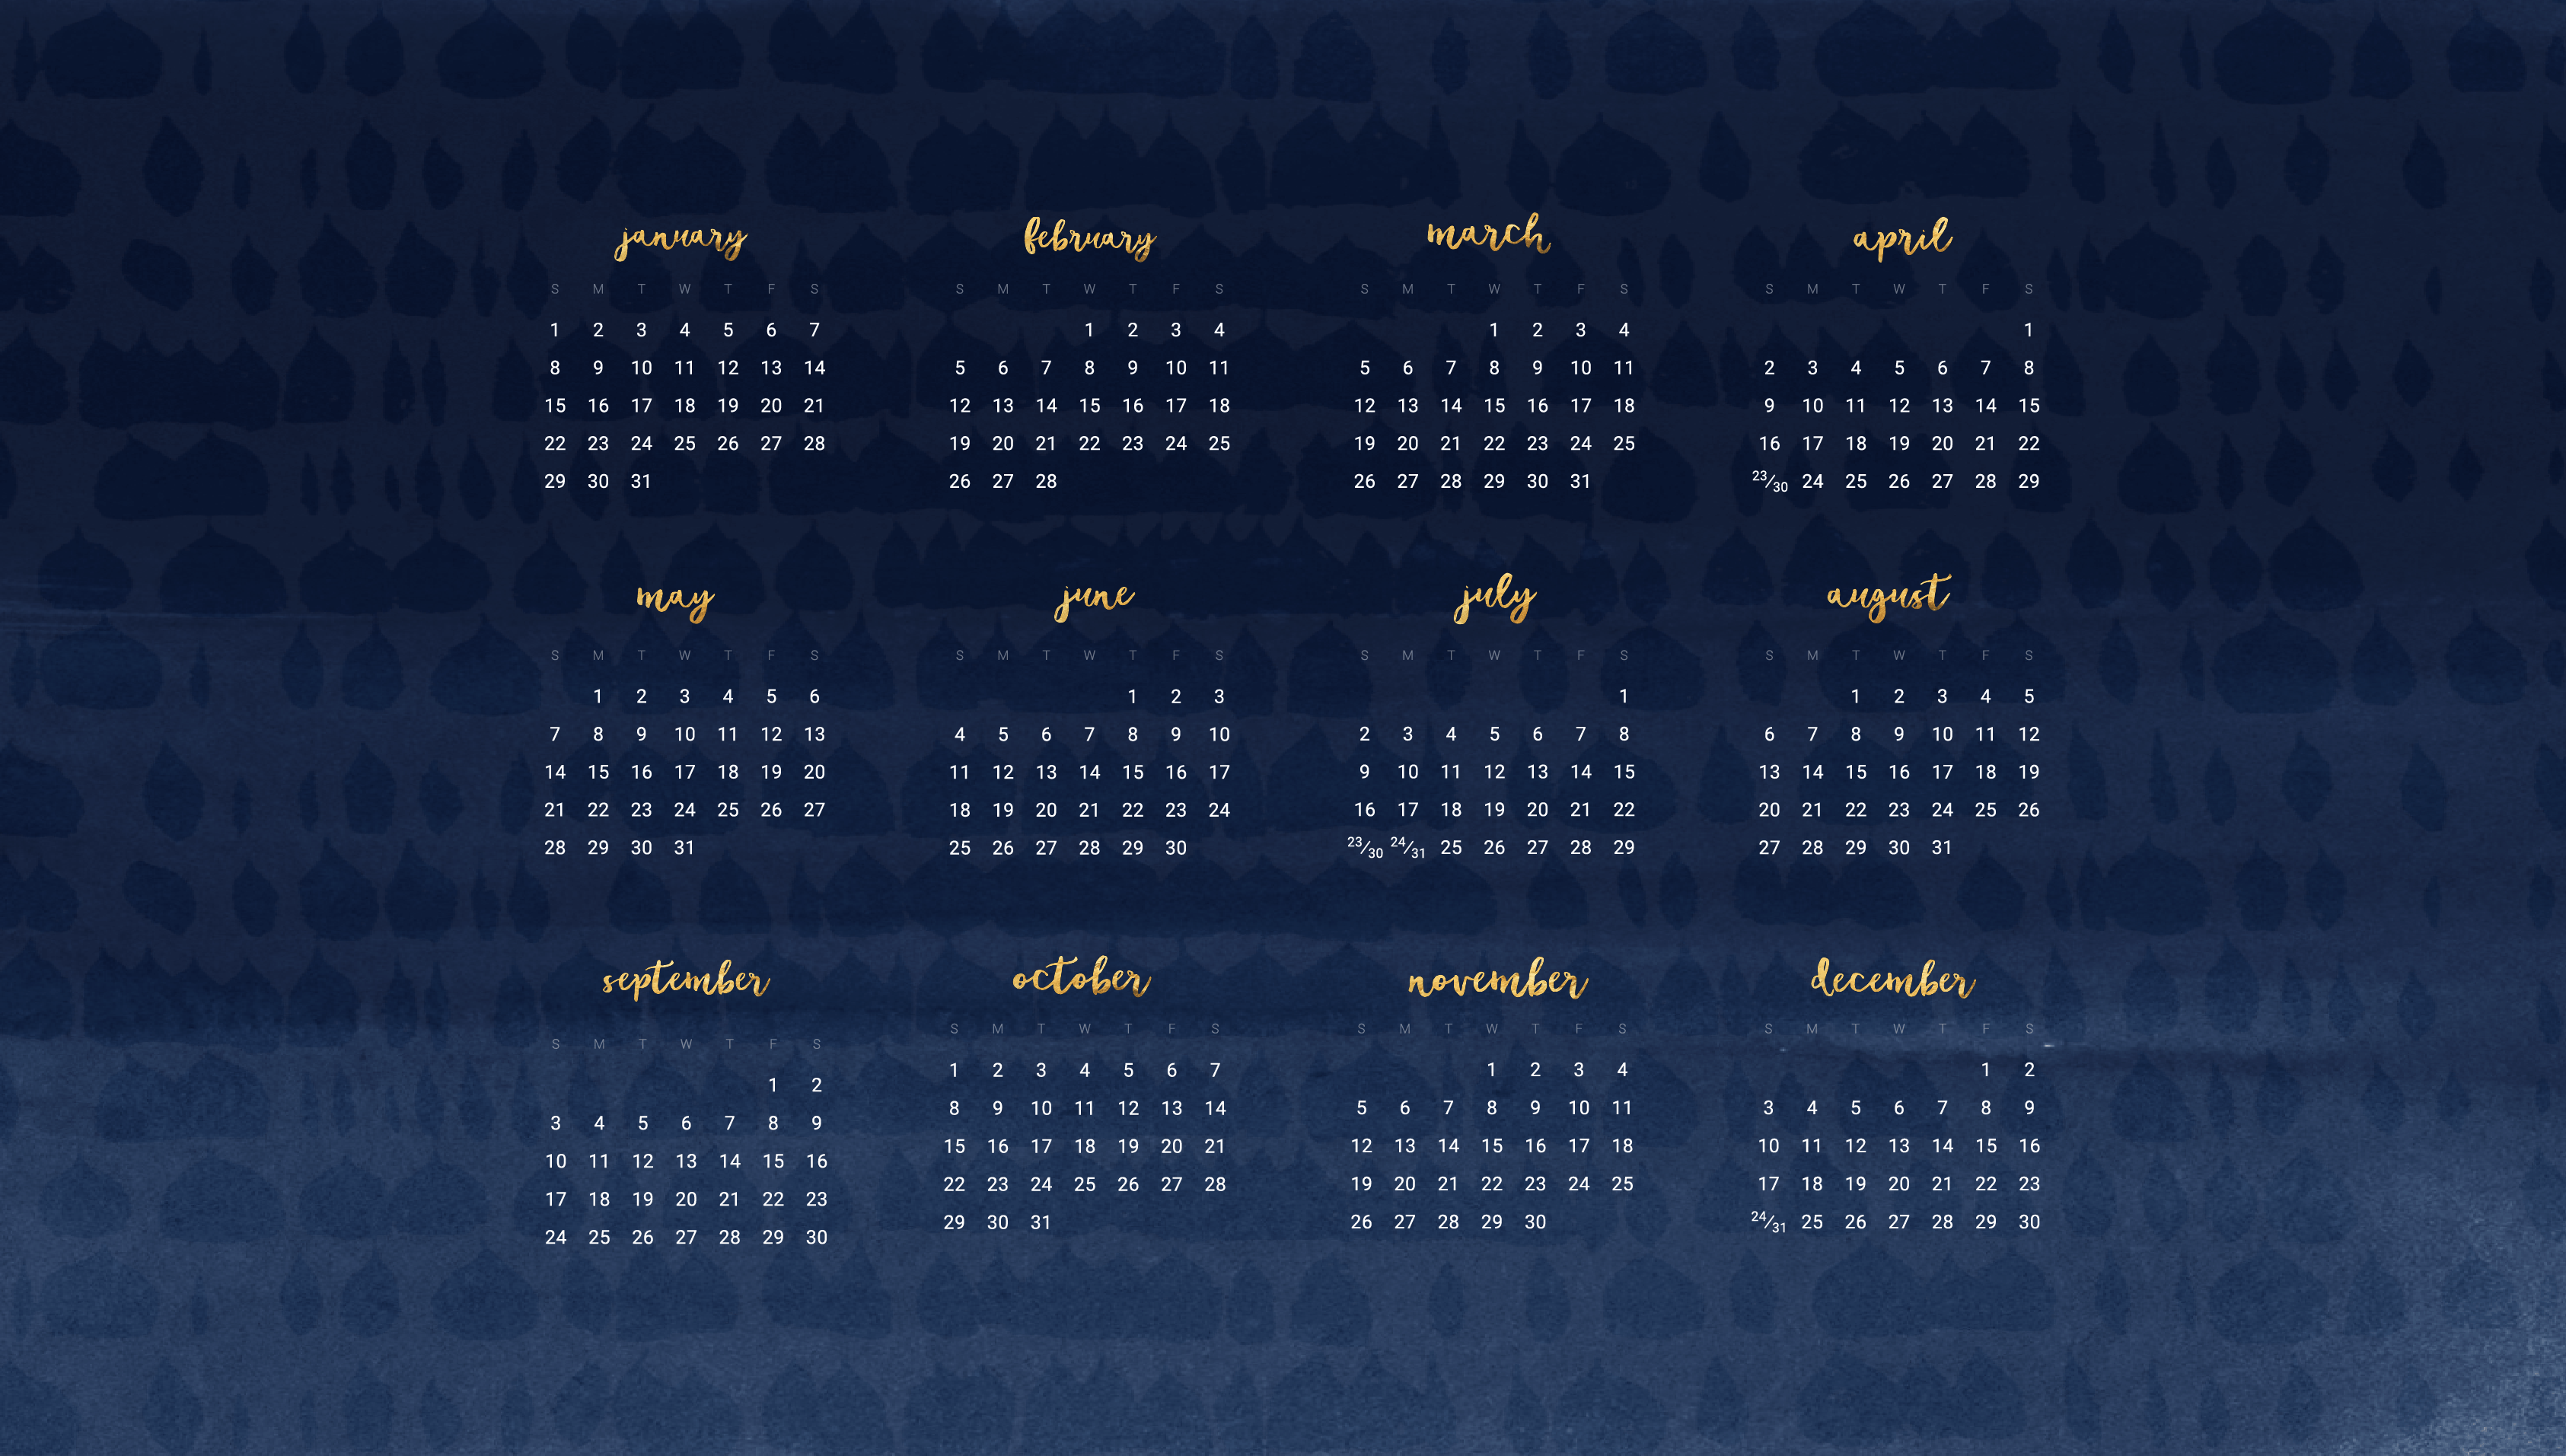 Free 2017 Desktop Wallpaper Calendars Desktop Wallpaper Calendar Wallpaper Desktop Wallpaper